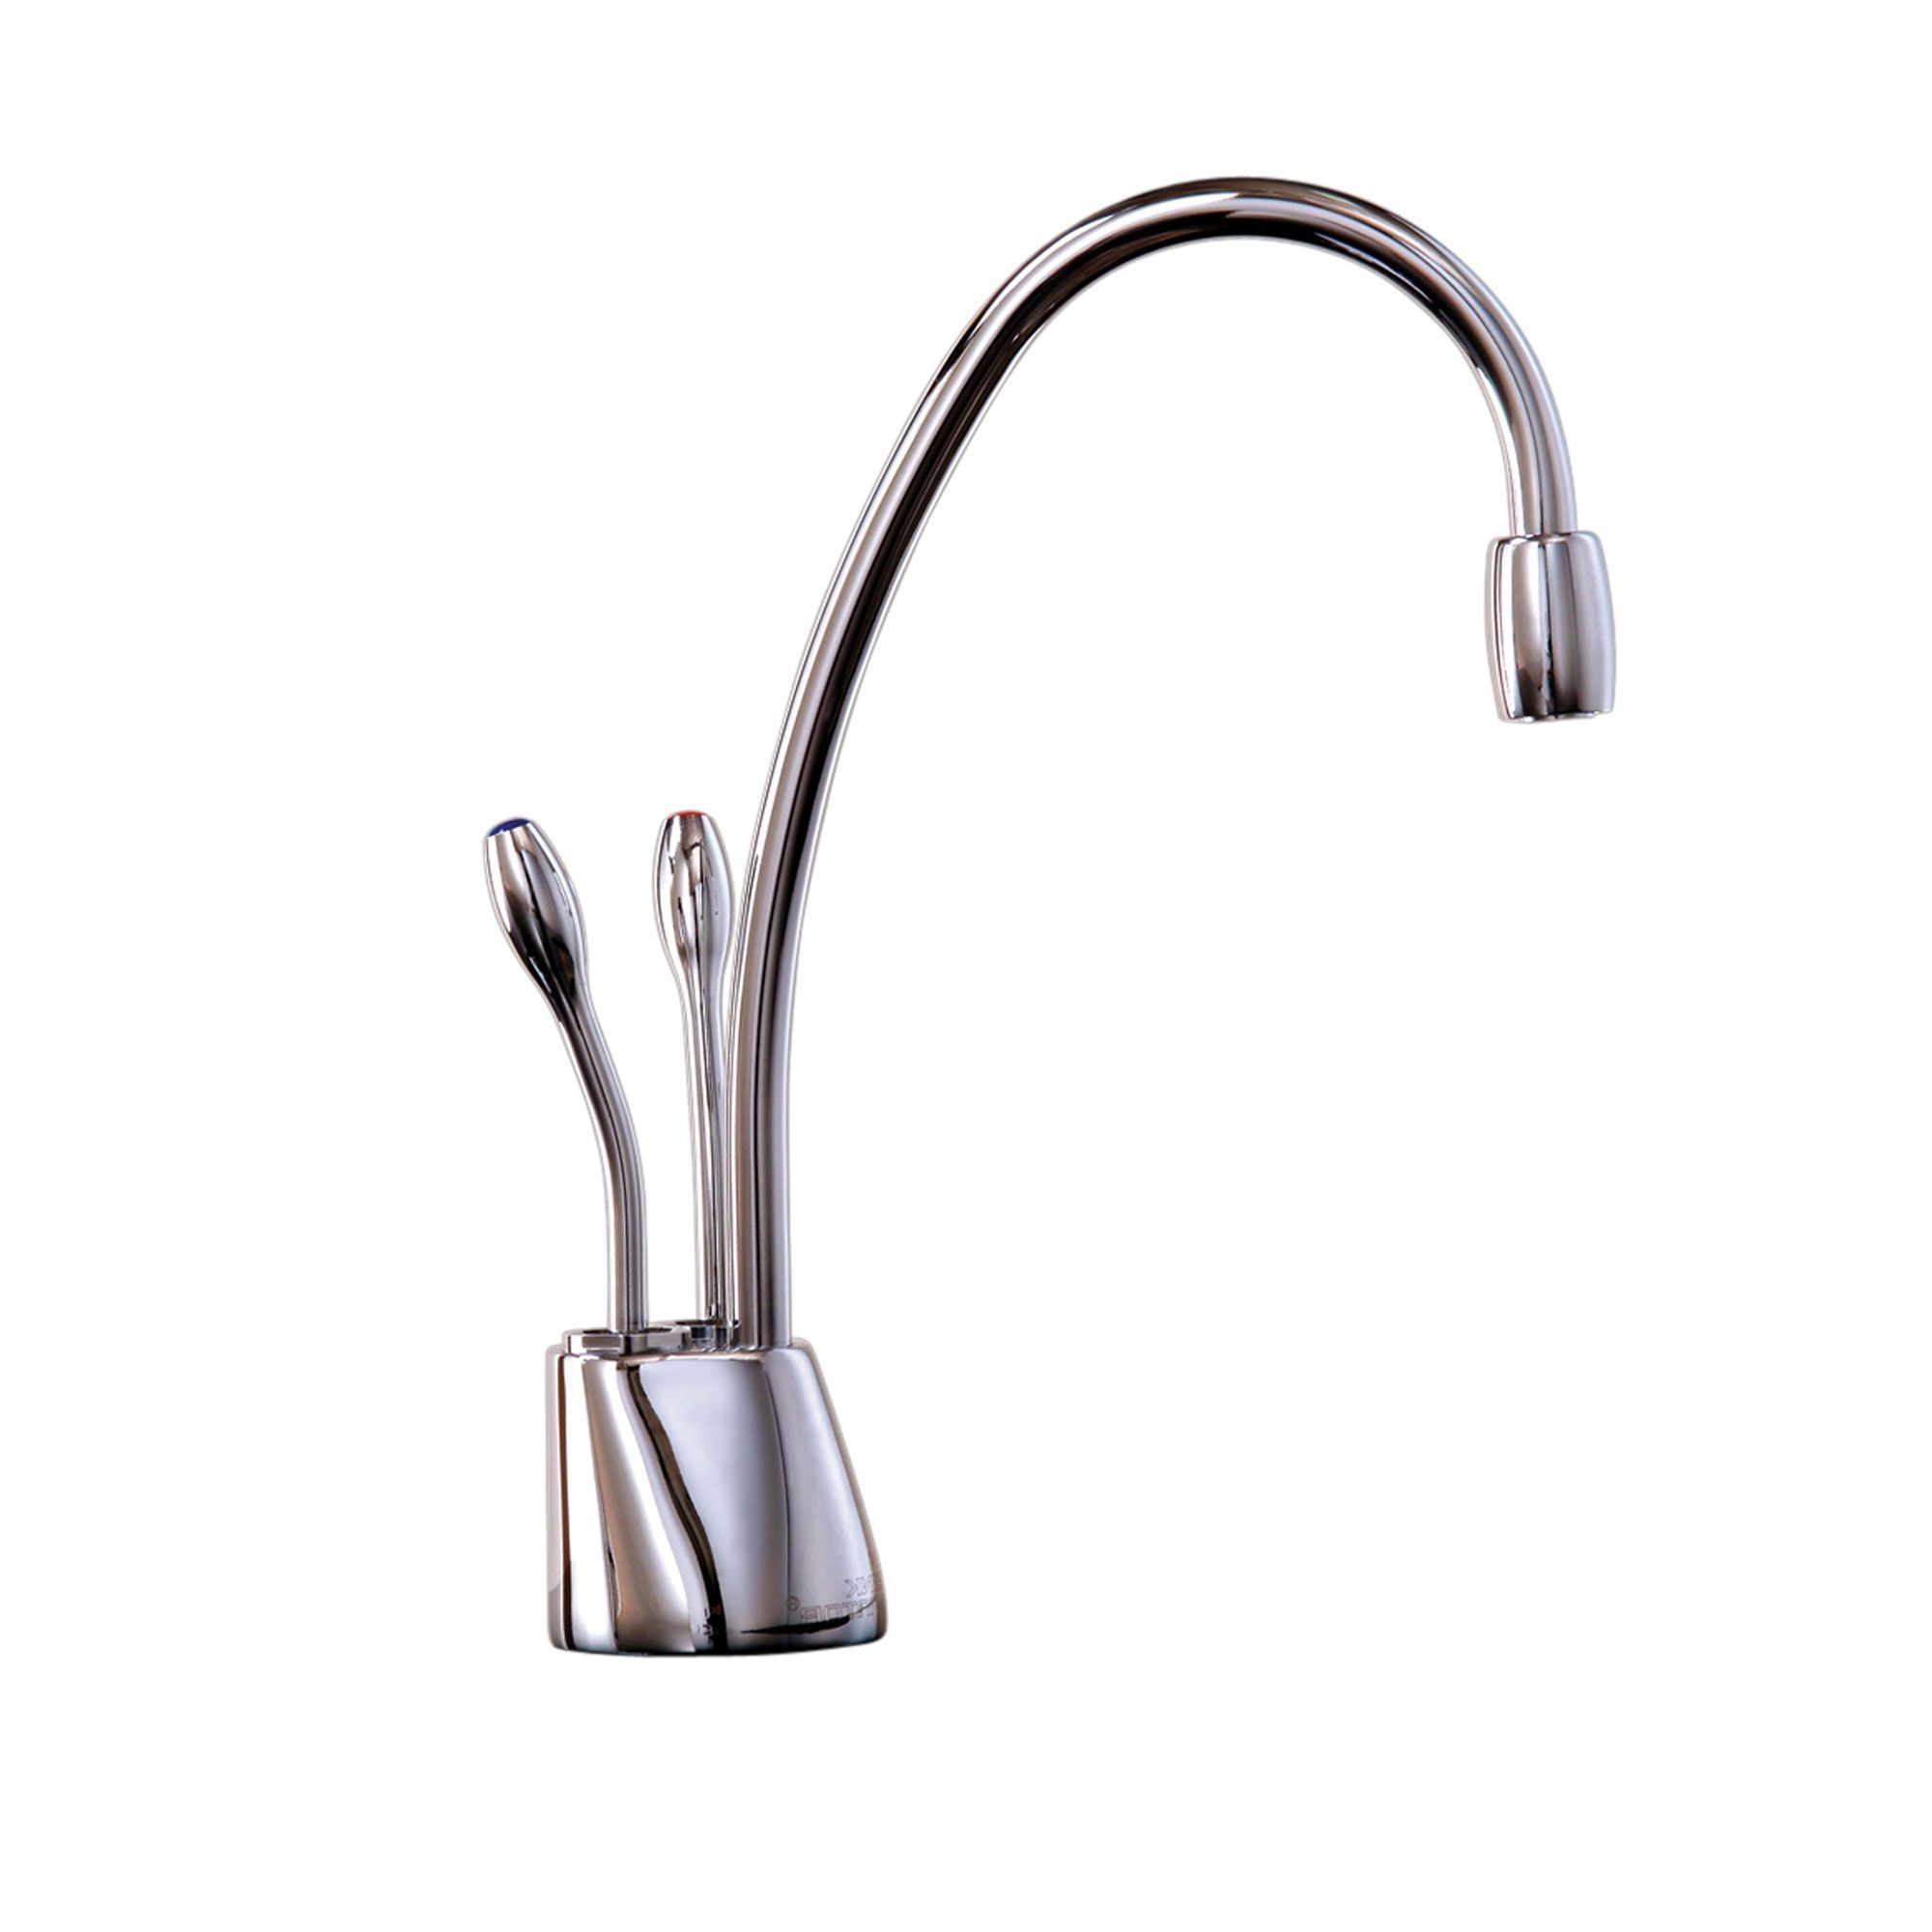 Insinkerator HC1100 Chrome Finish Filtered Hot & Cold Water Tap